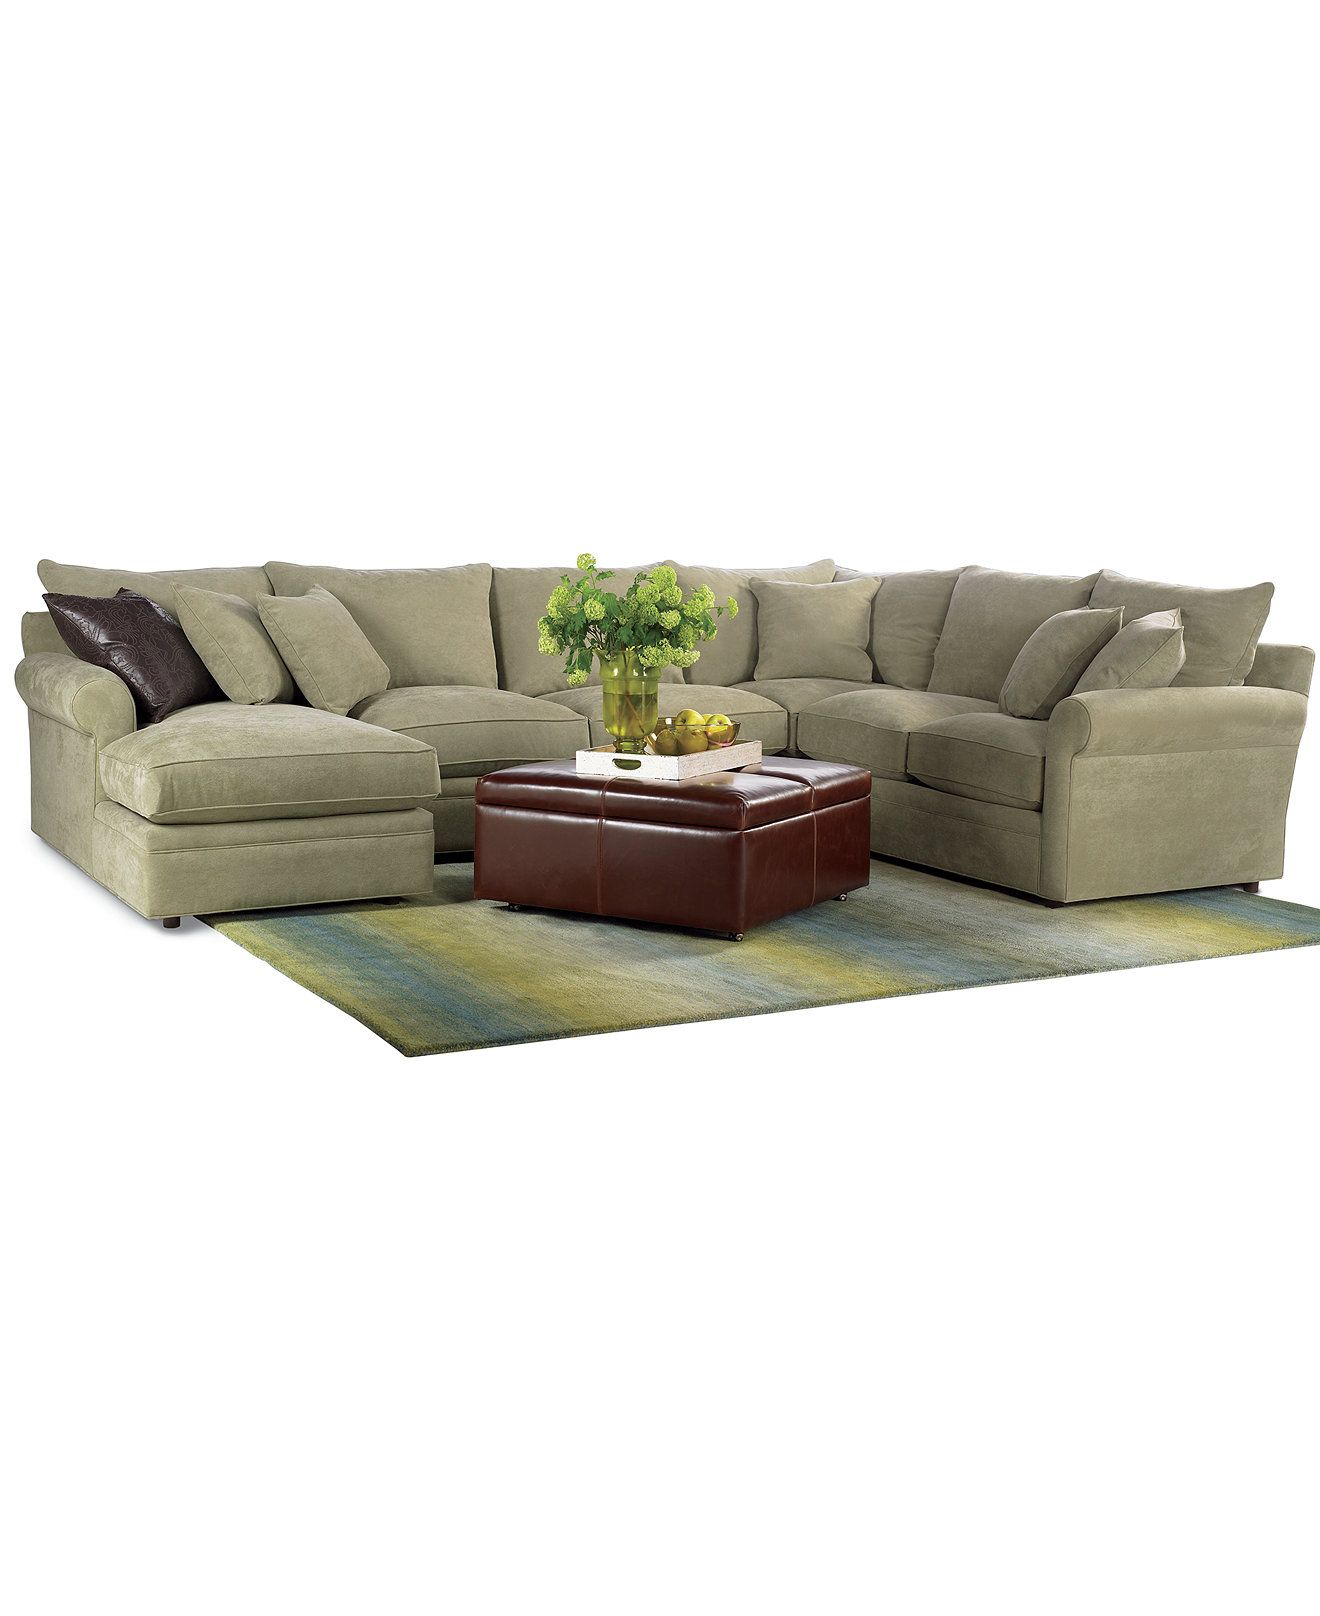 Left Arm Sofa Sectional Sure Fit Ultimate Waterproof Suede Cover Doss Fabric Microfiber 4 Piece